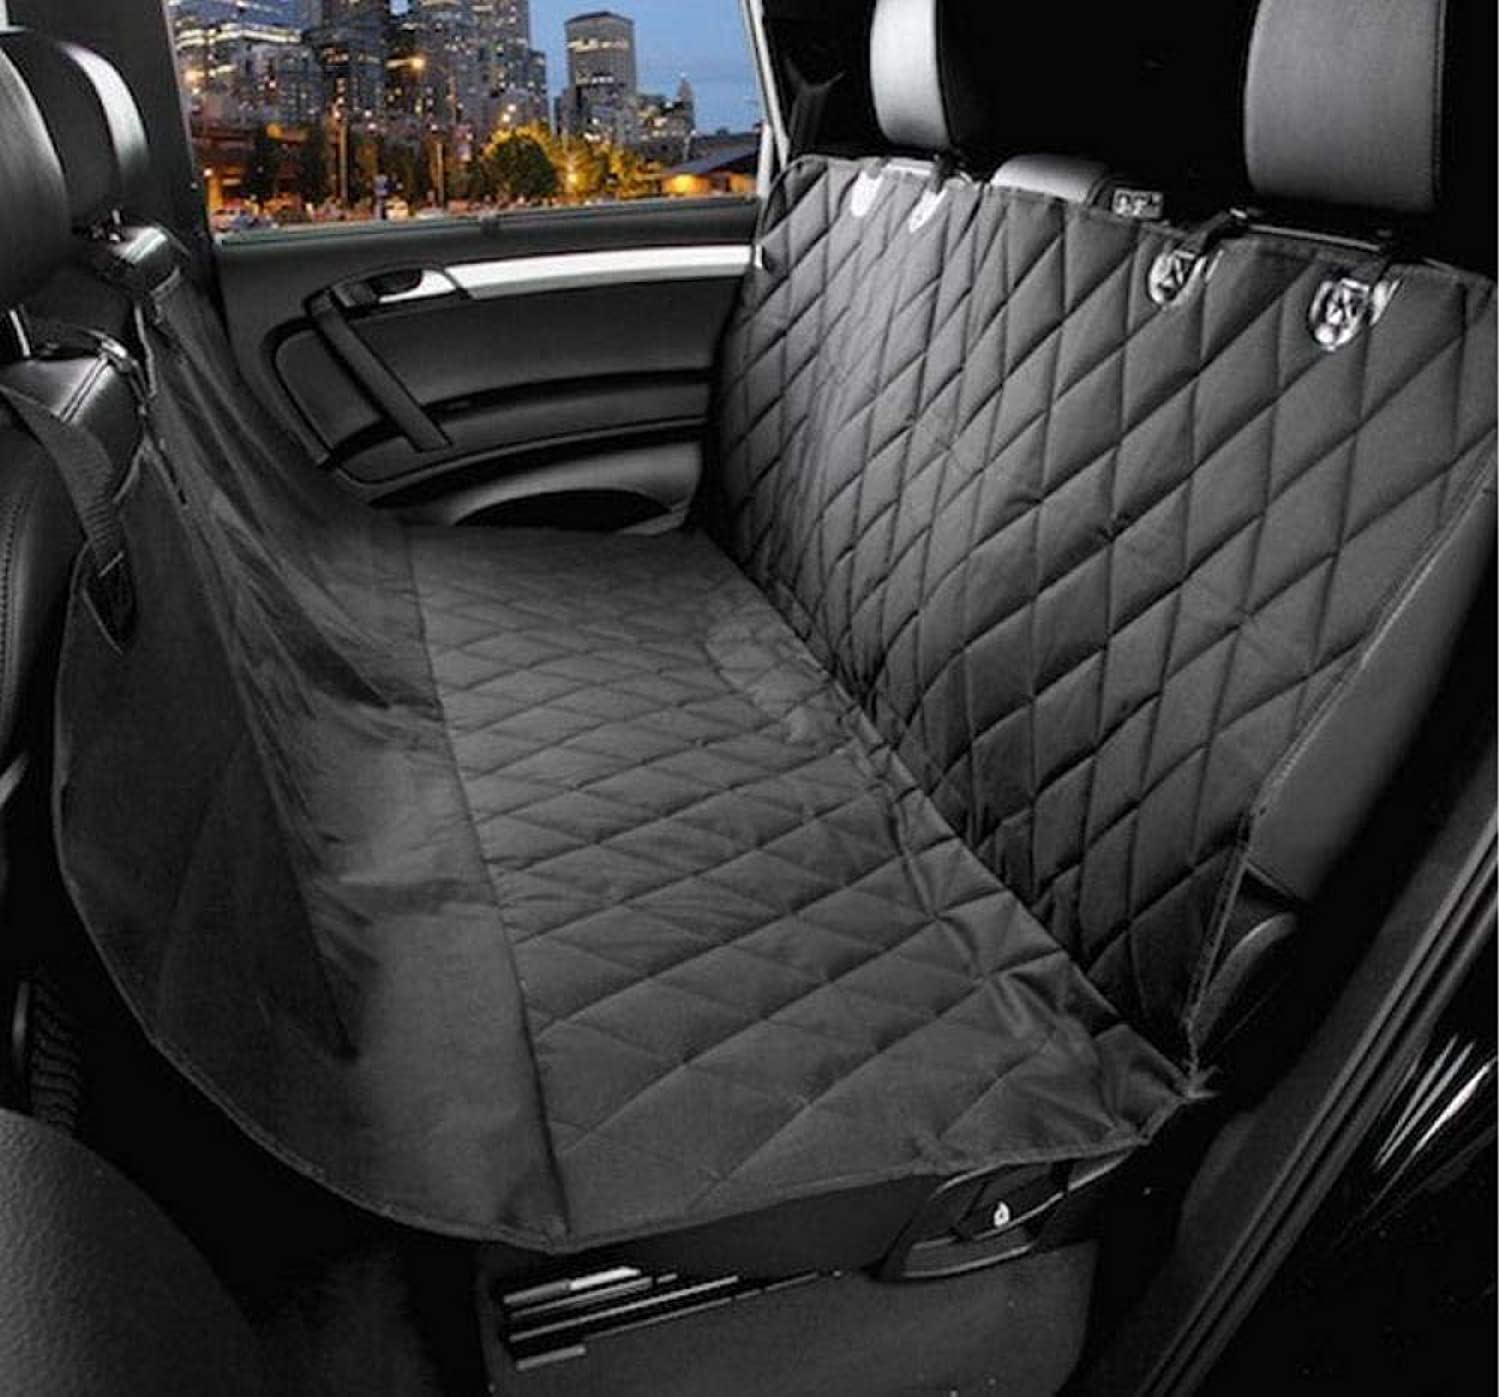 QWERTLH Dog Car Seat Covers Rear Car Seat Waterproof Nonslip Dog Hammock Pet Seat Predector For Cars,Black